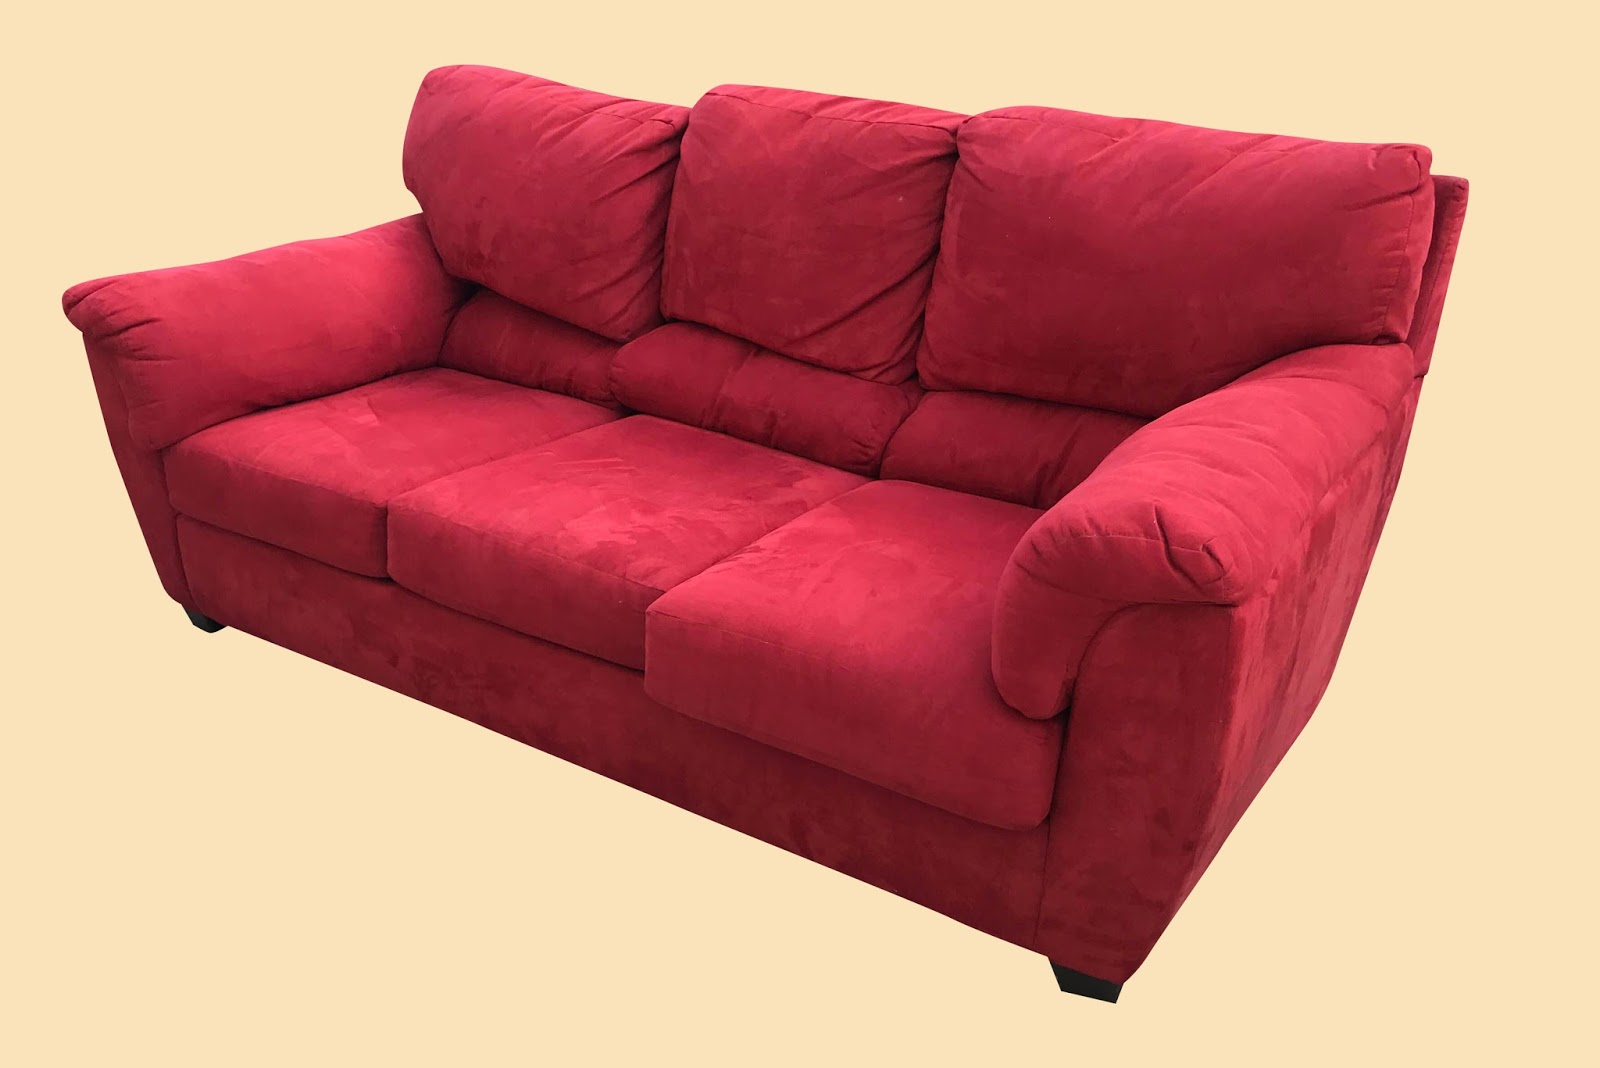 Uhuru Furniture Collectibles Red Microfiber Sofa 225